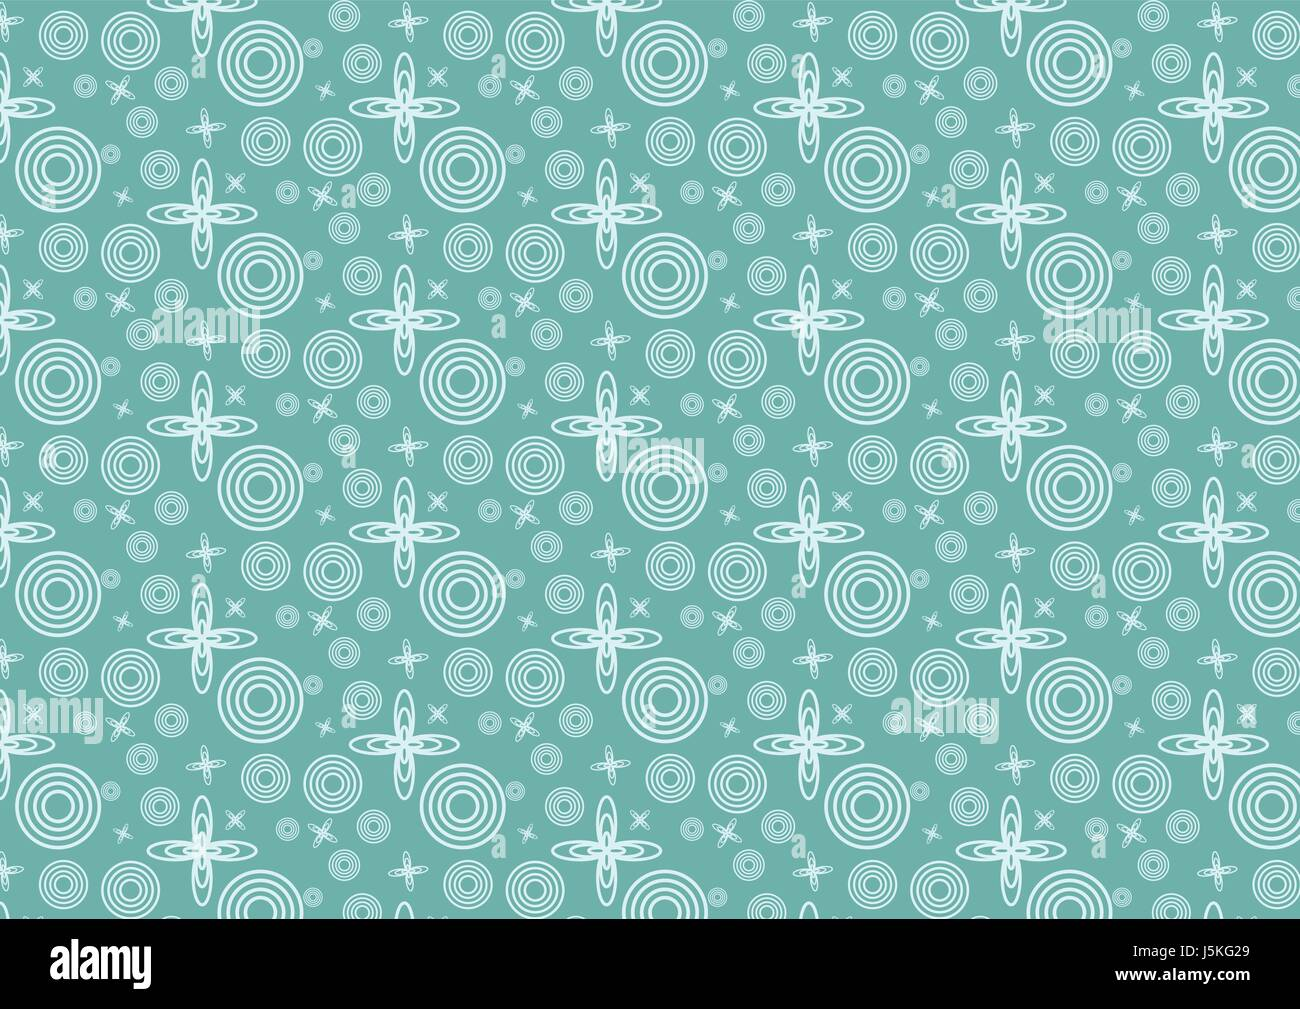 Vintage star orbit and circle pattern in space. Circle and oval pattern classic and cute style for design. - Stock Vector